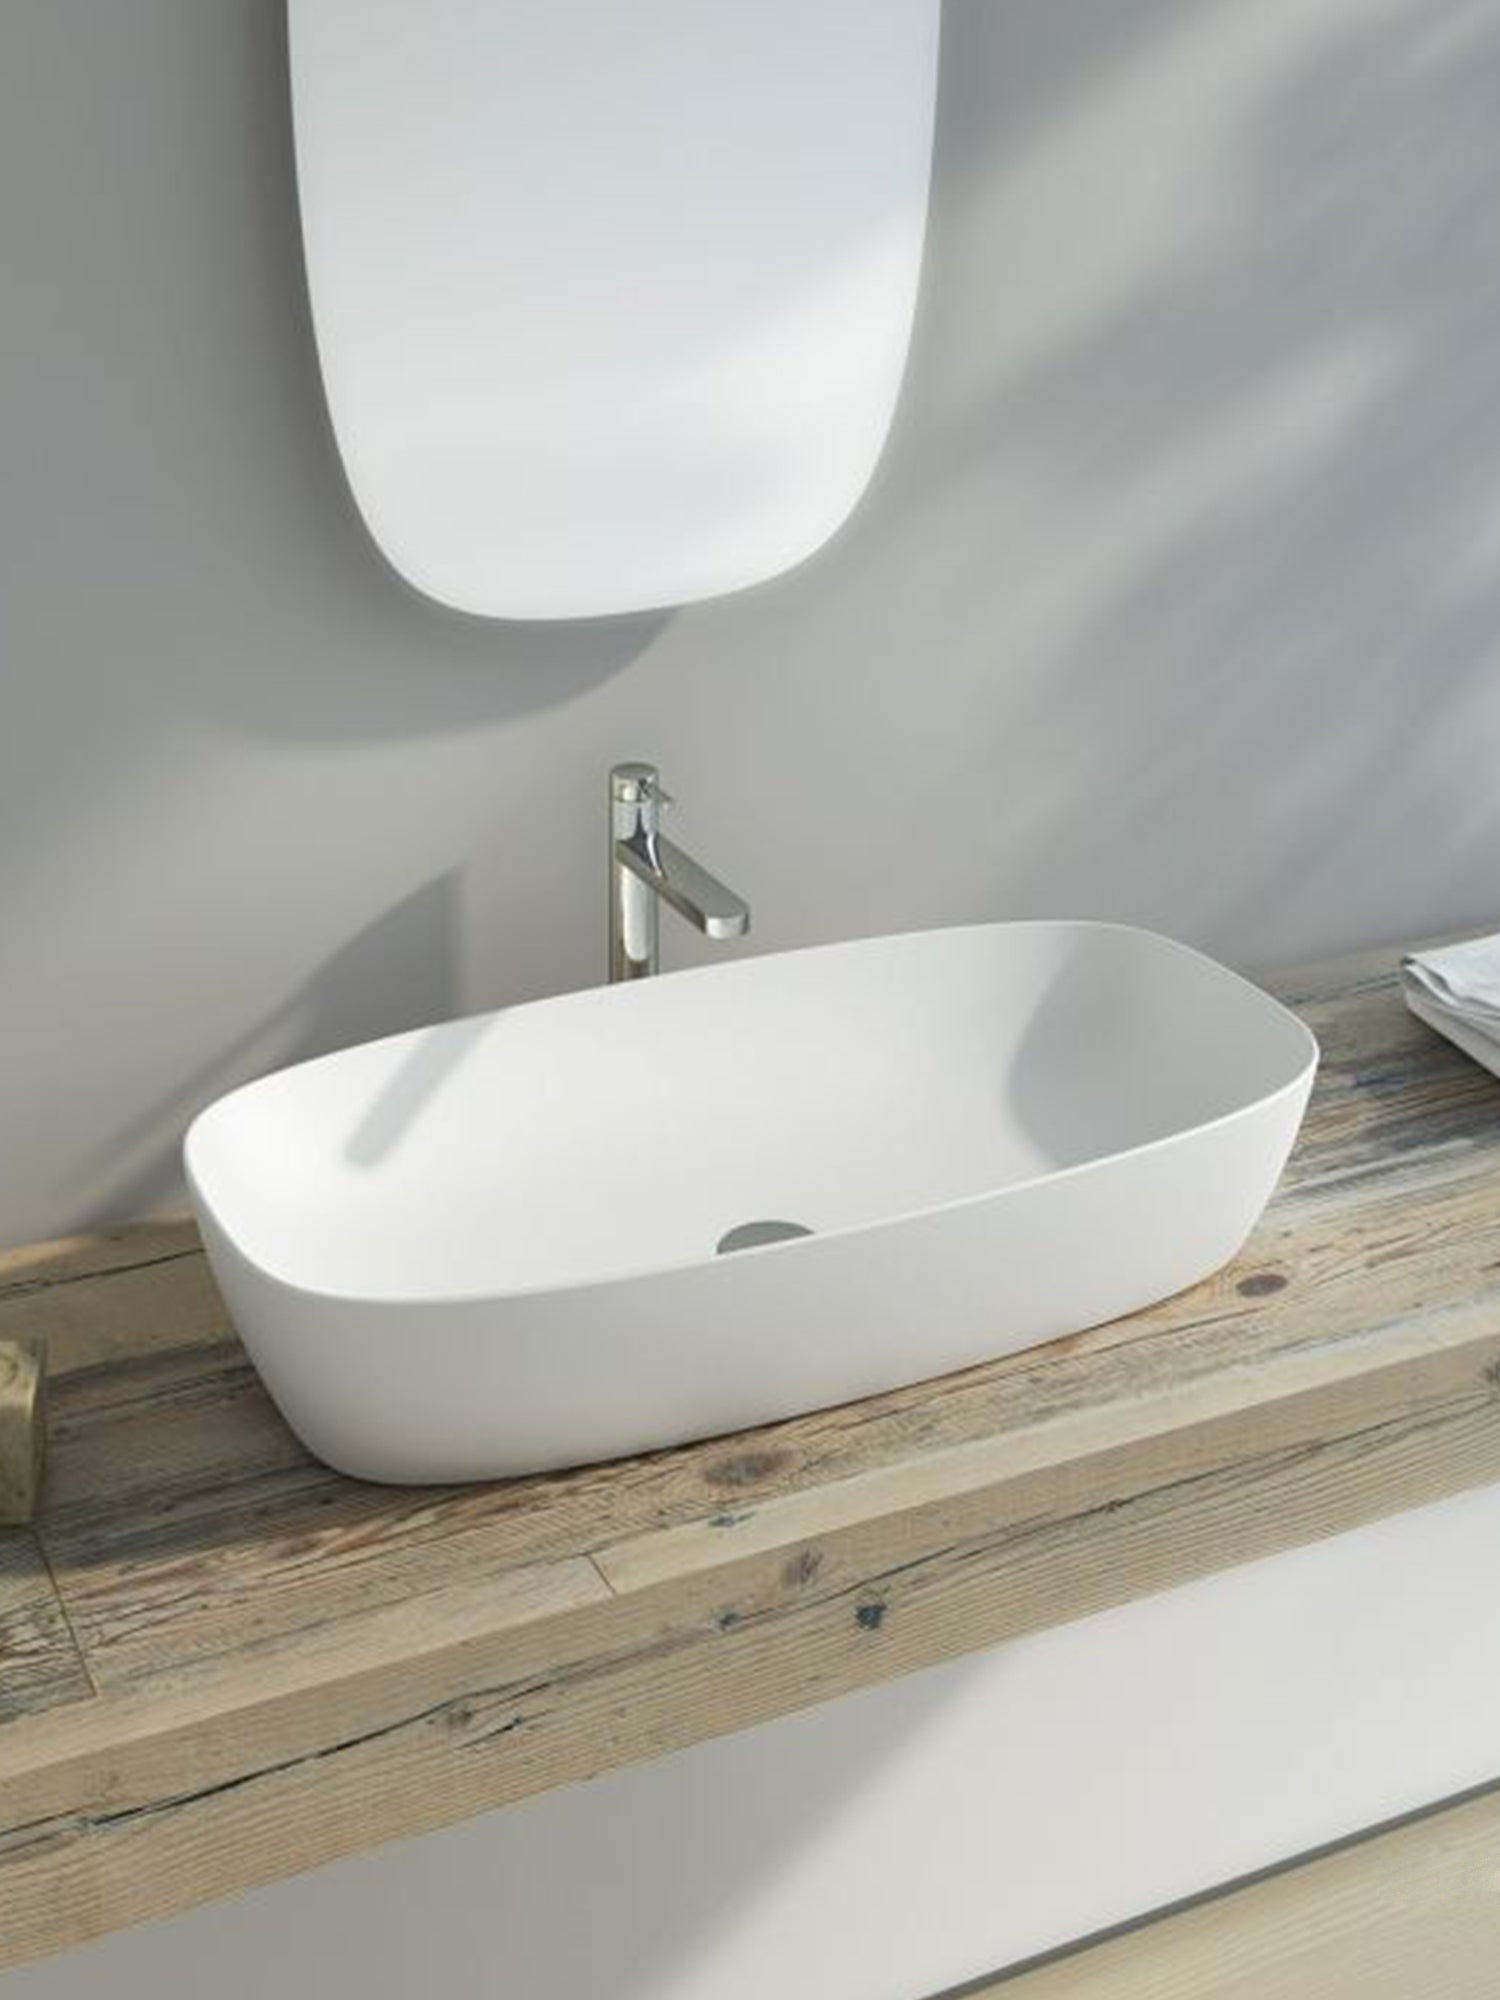 Green Lux Colori Countertop Basin 800X400 (Avail. in 7 Colour Tones)